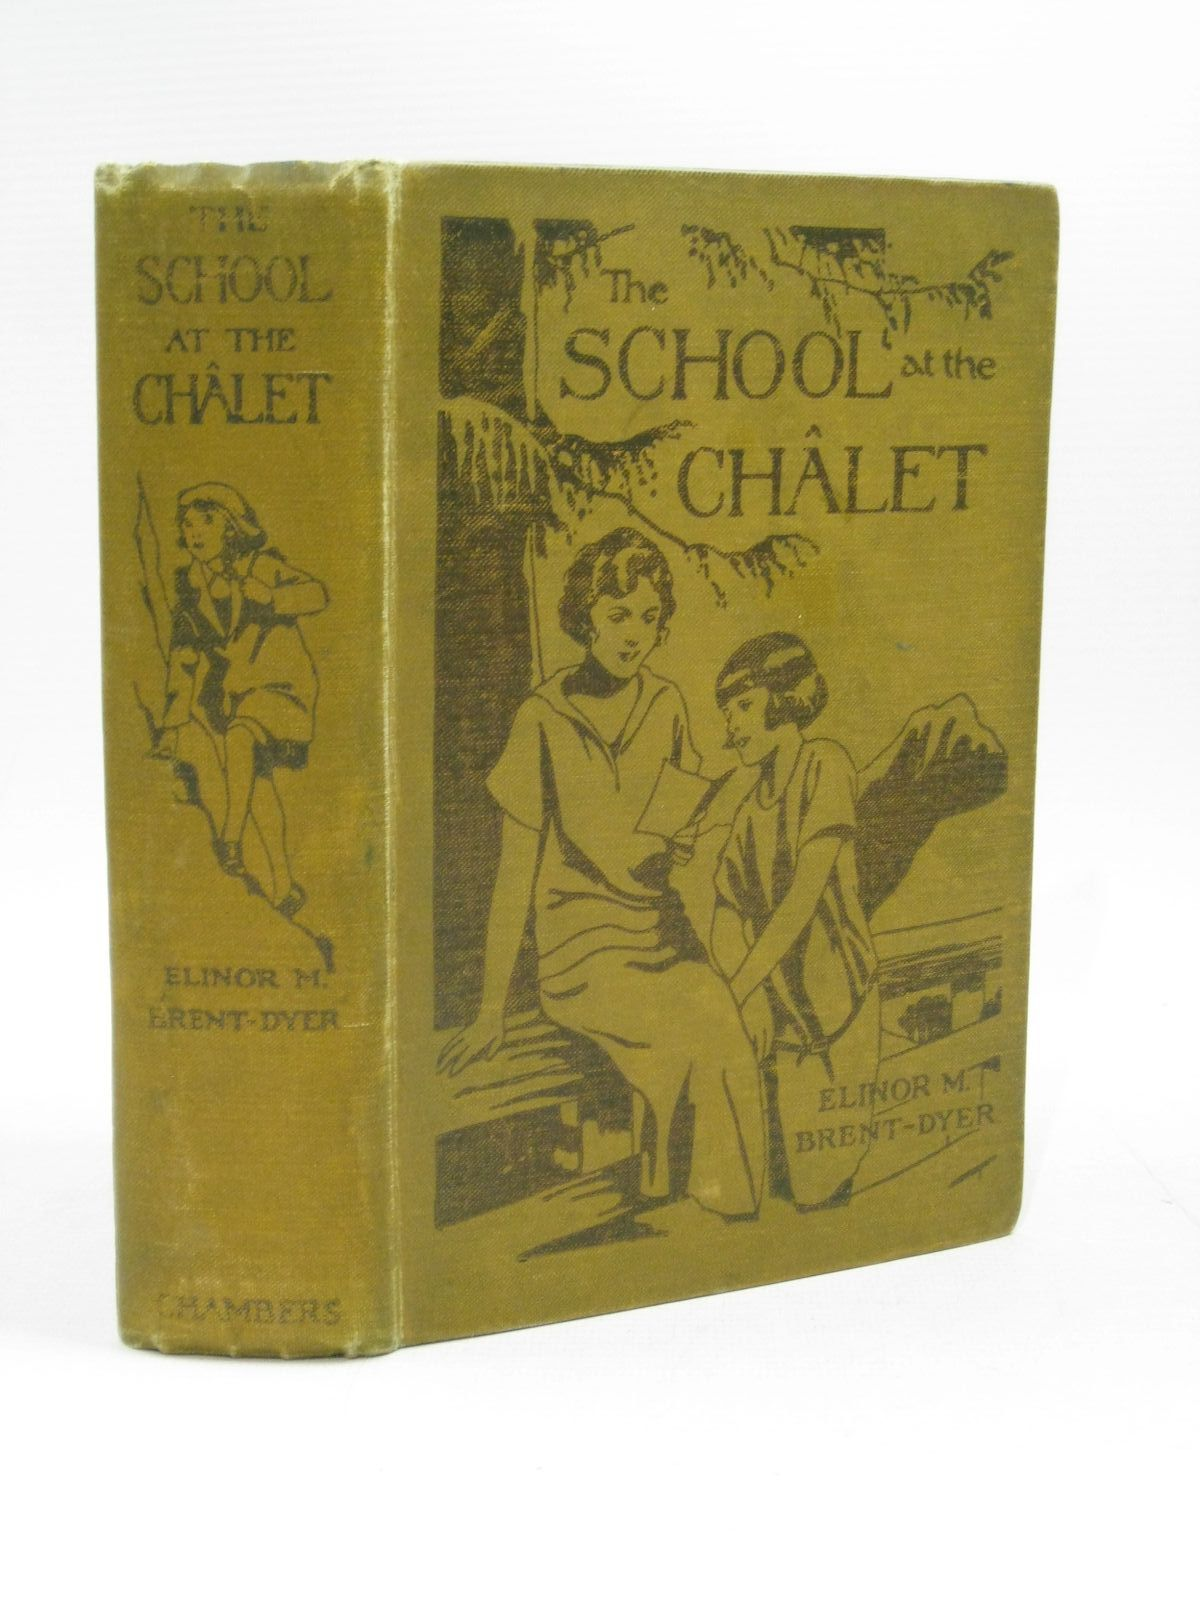 collectible copy of The School at the Chalet